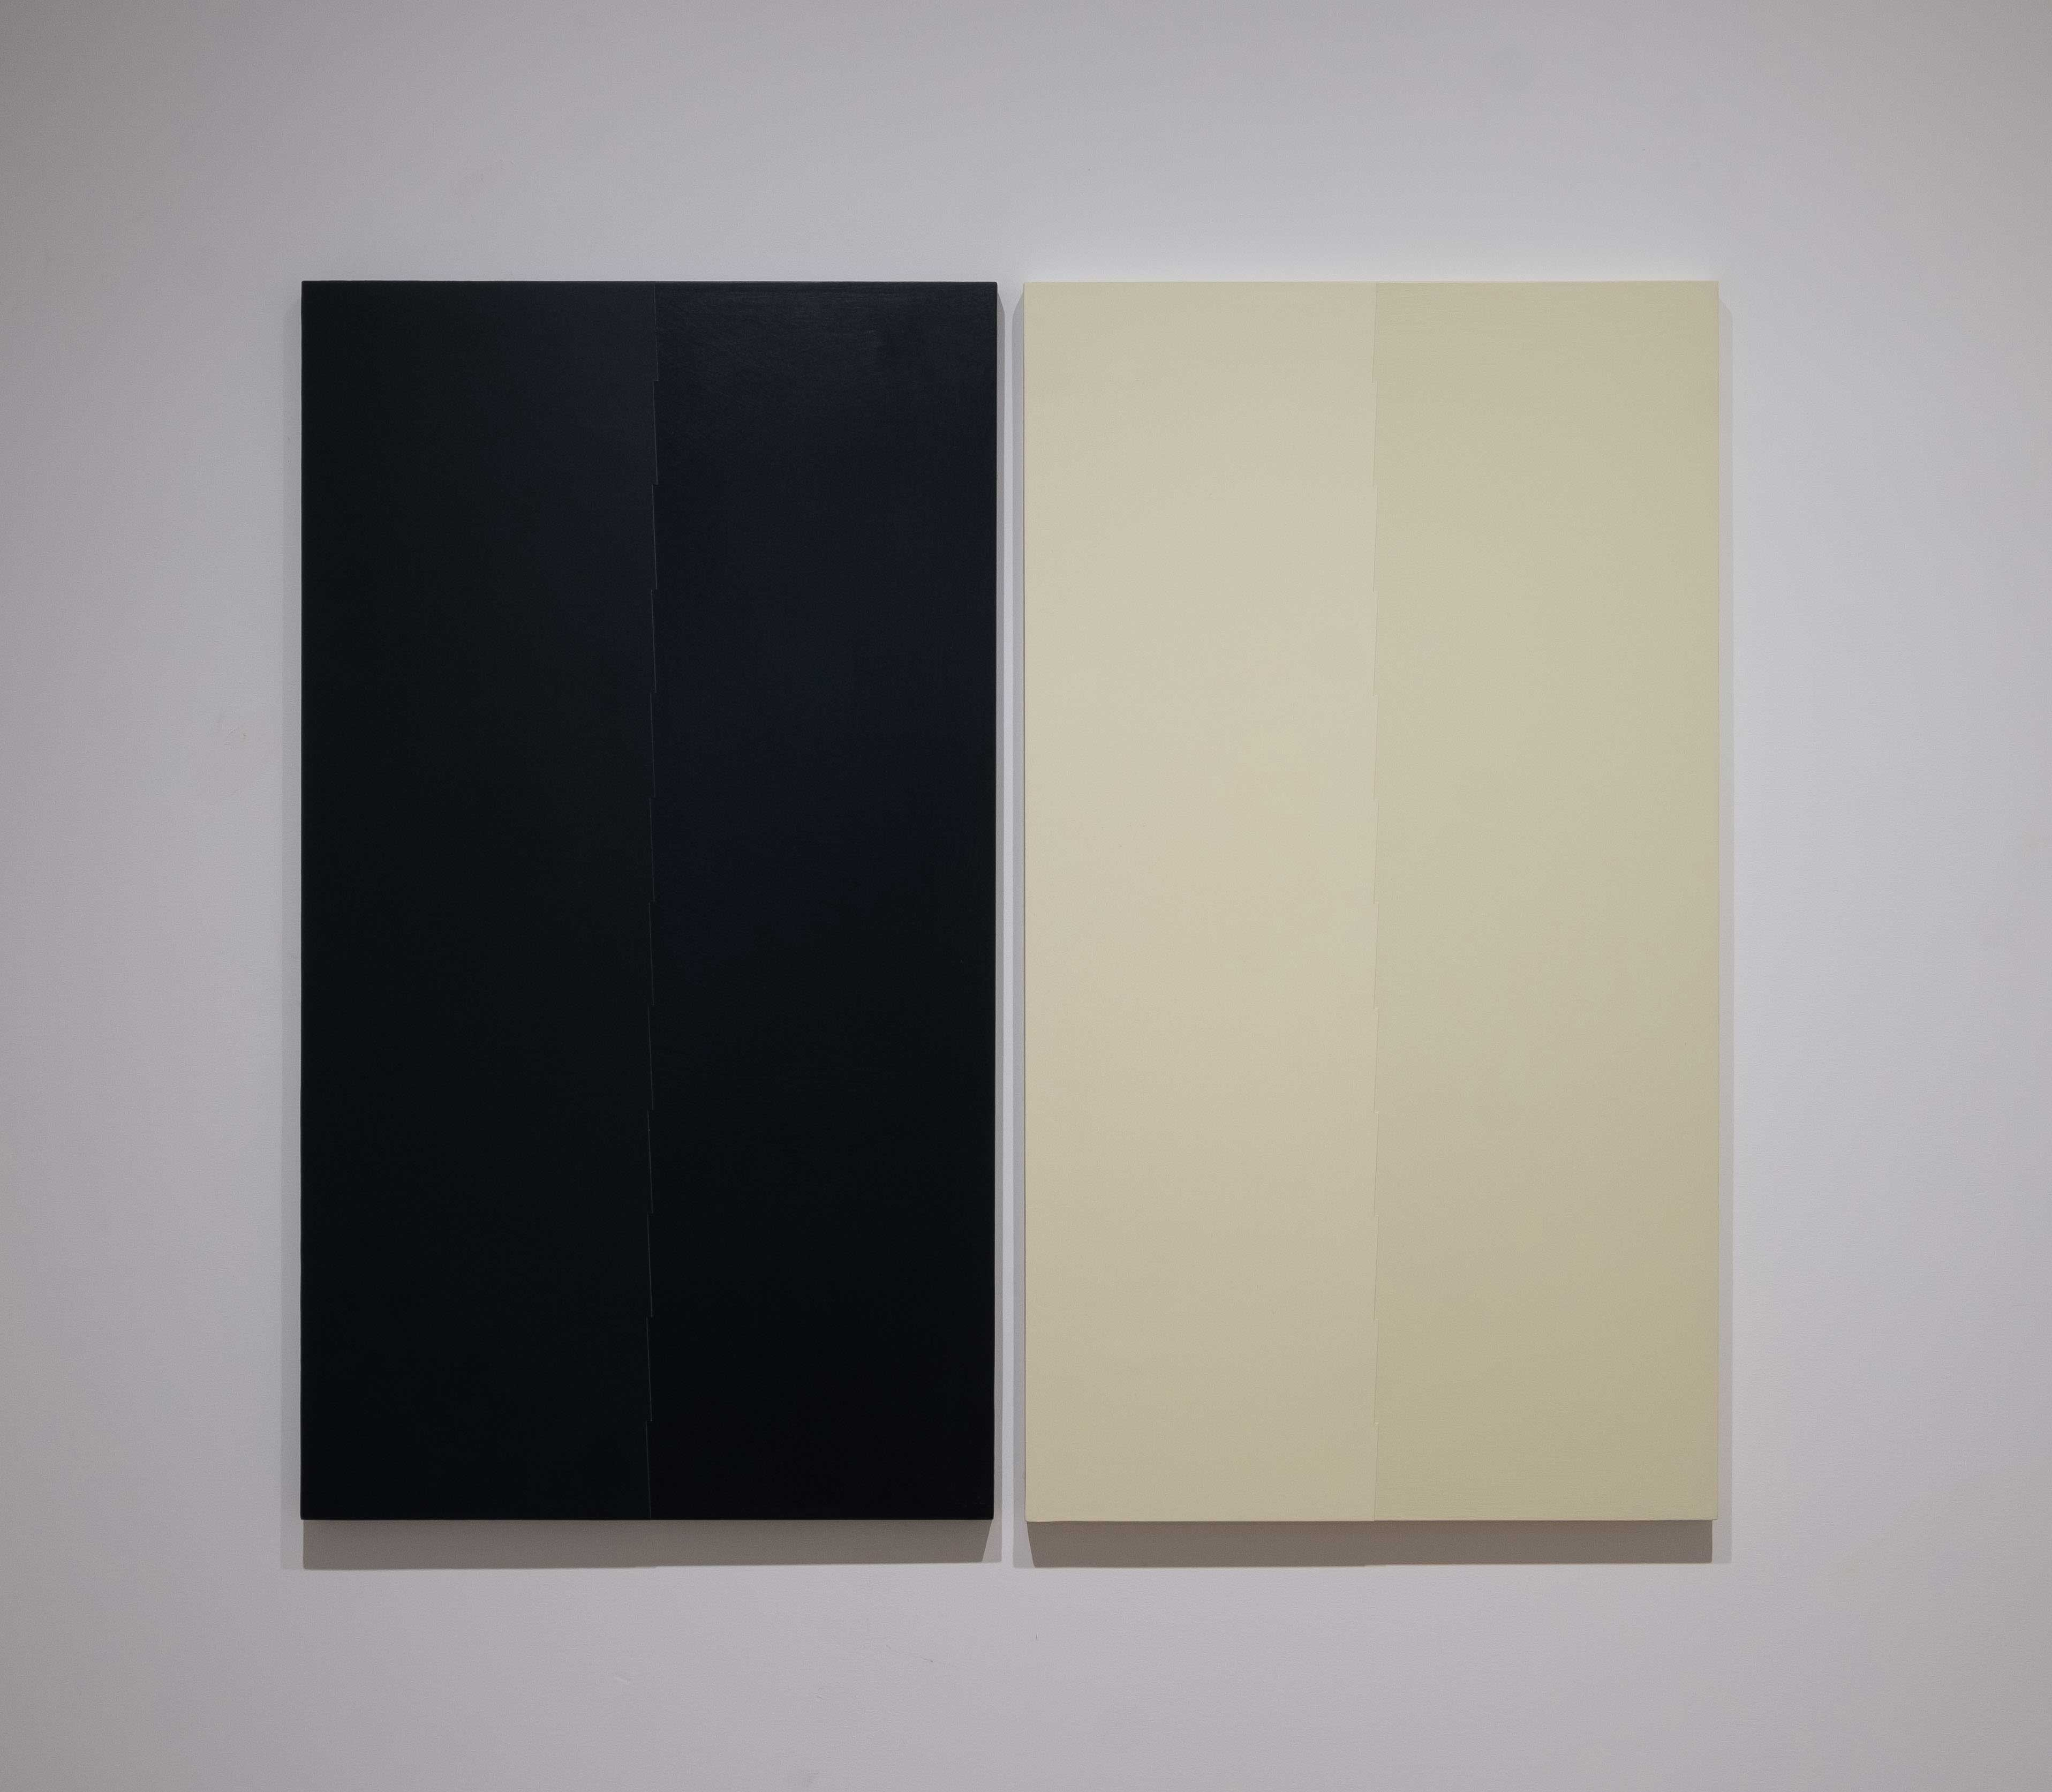 Tess Jaray 2015 Oil on boad 33.9 x 38 inches (86 x 96.5 cm)  2019 Marc Straus Gallery